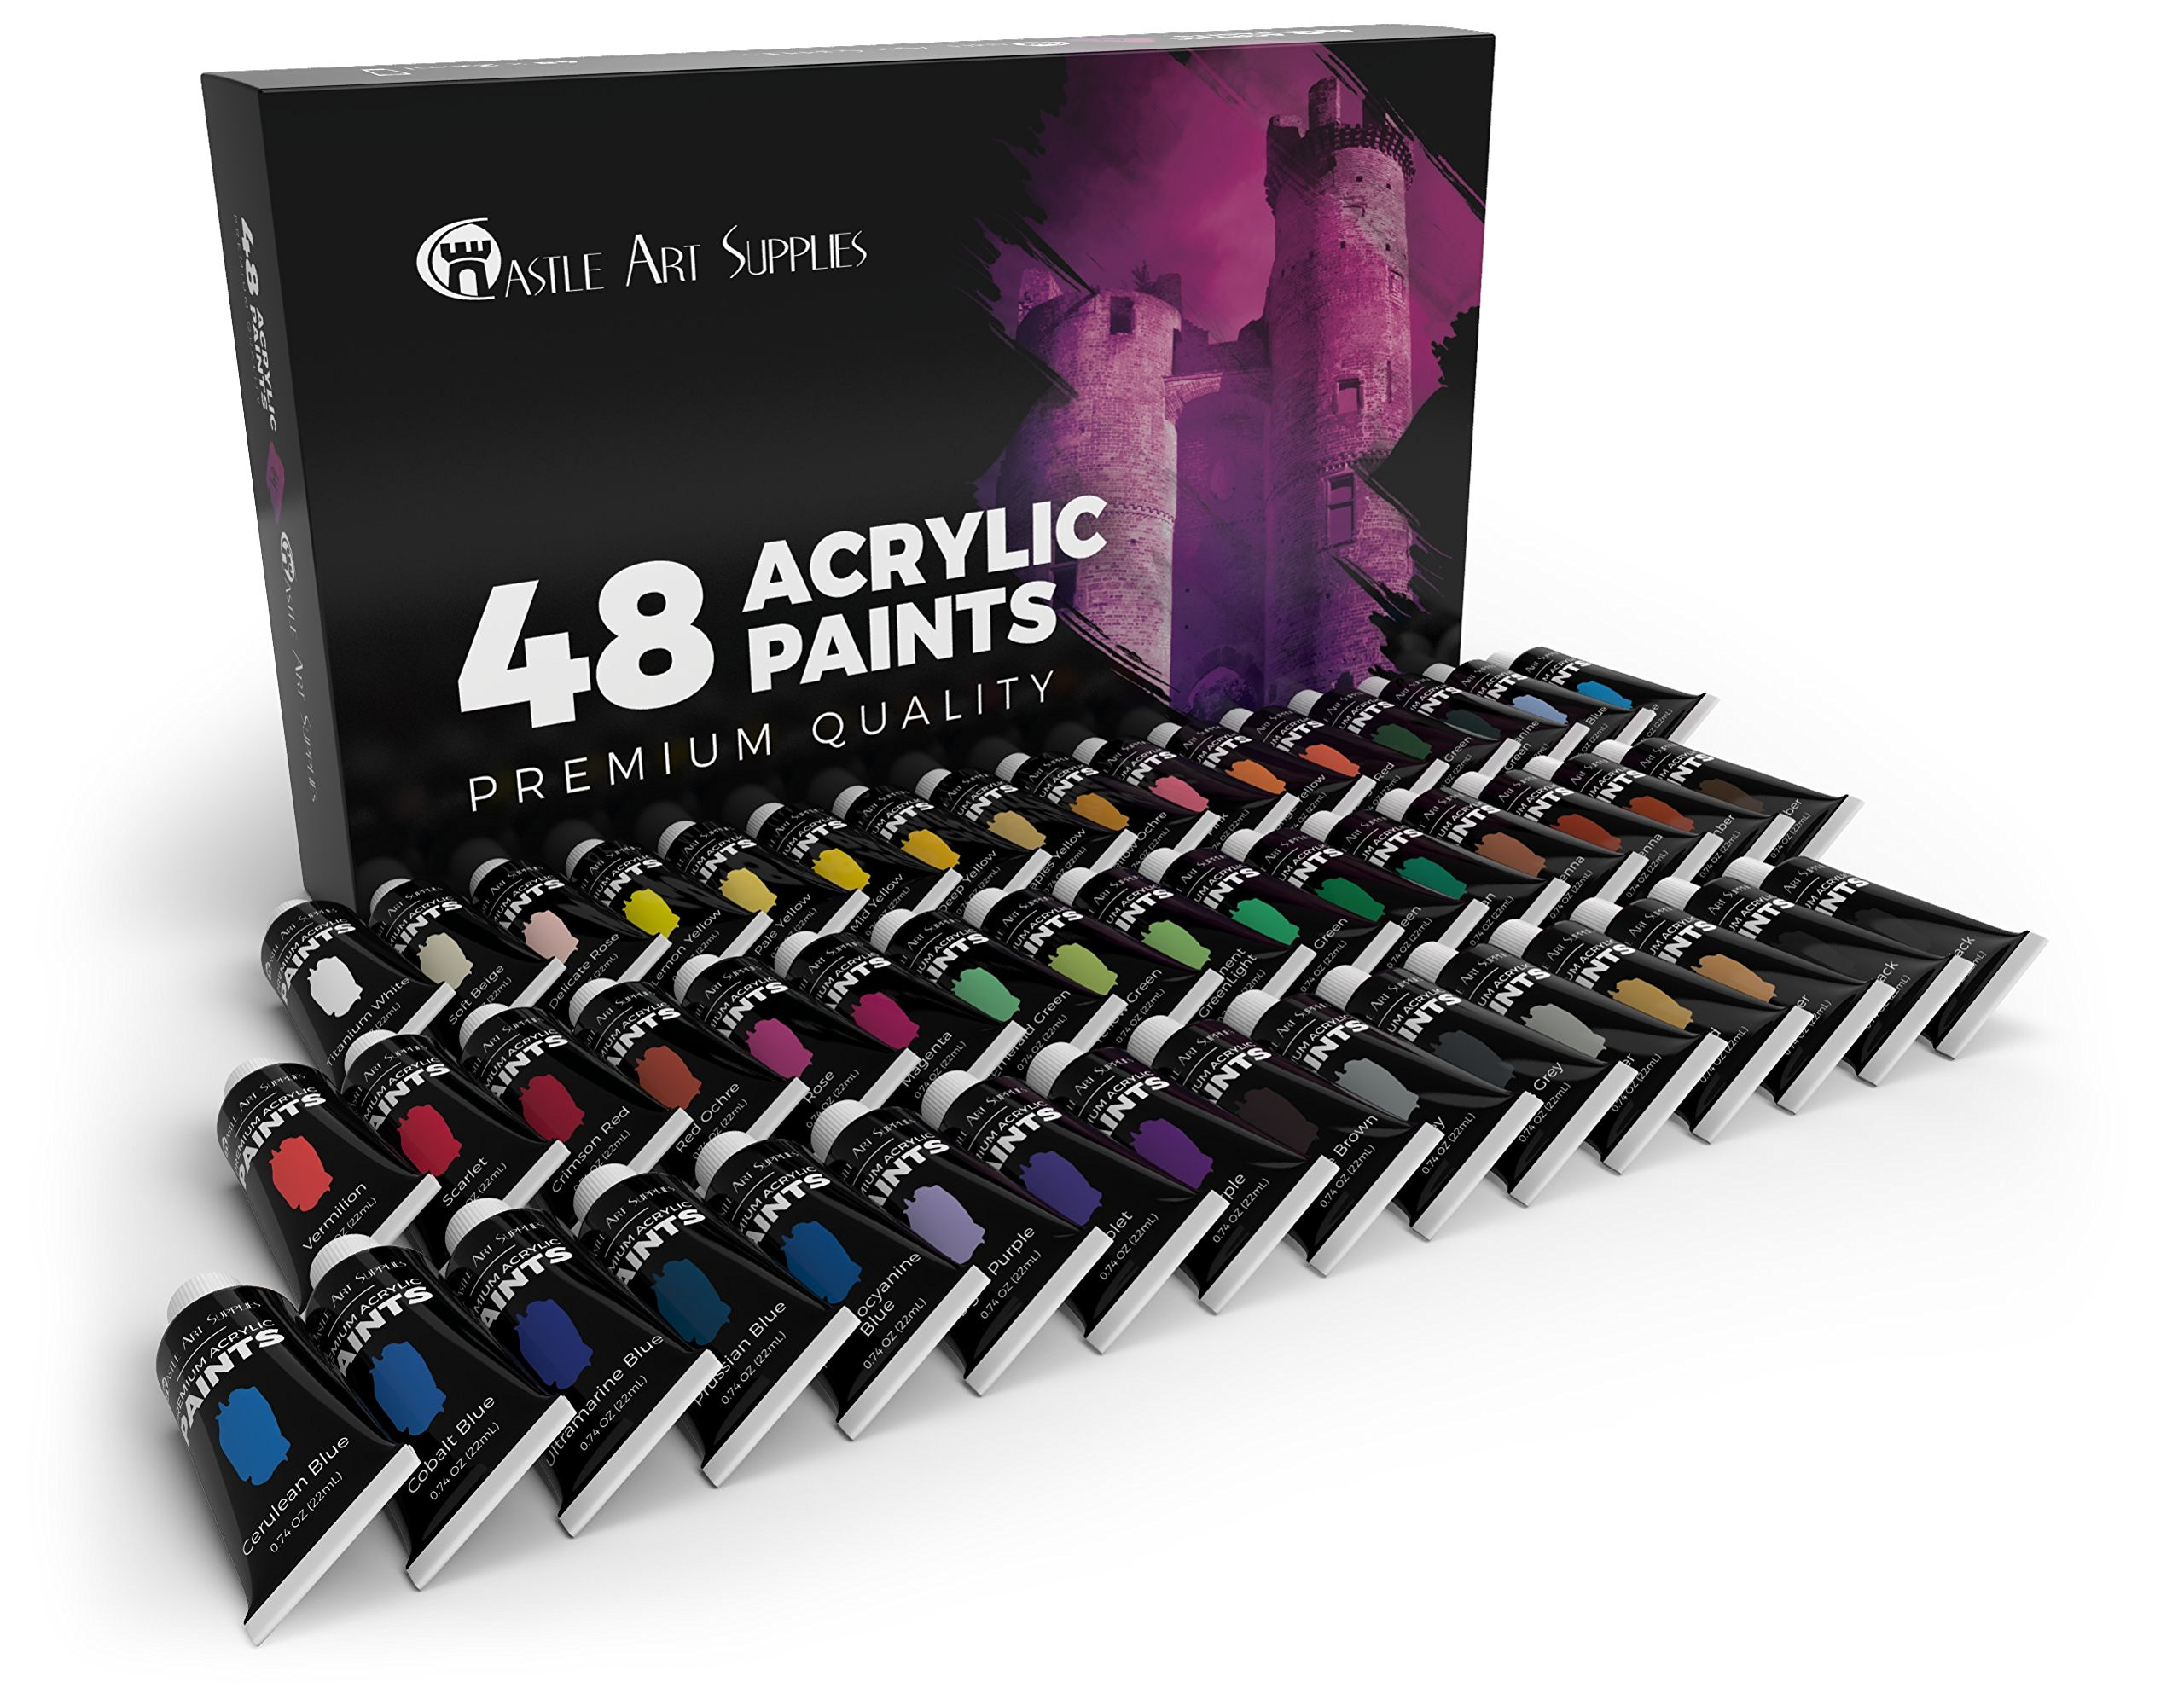 Castle Art Supplies Acrylic Paint Set - 48 Vibrant Colors with Larger Tubes - The Premium Kit for Artists, Beginners or Kids by Castle Art Supplies (Image #6)